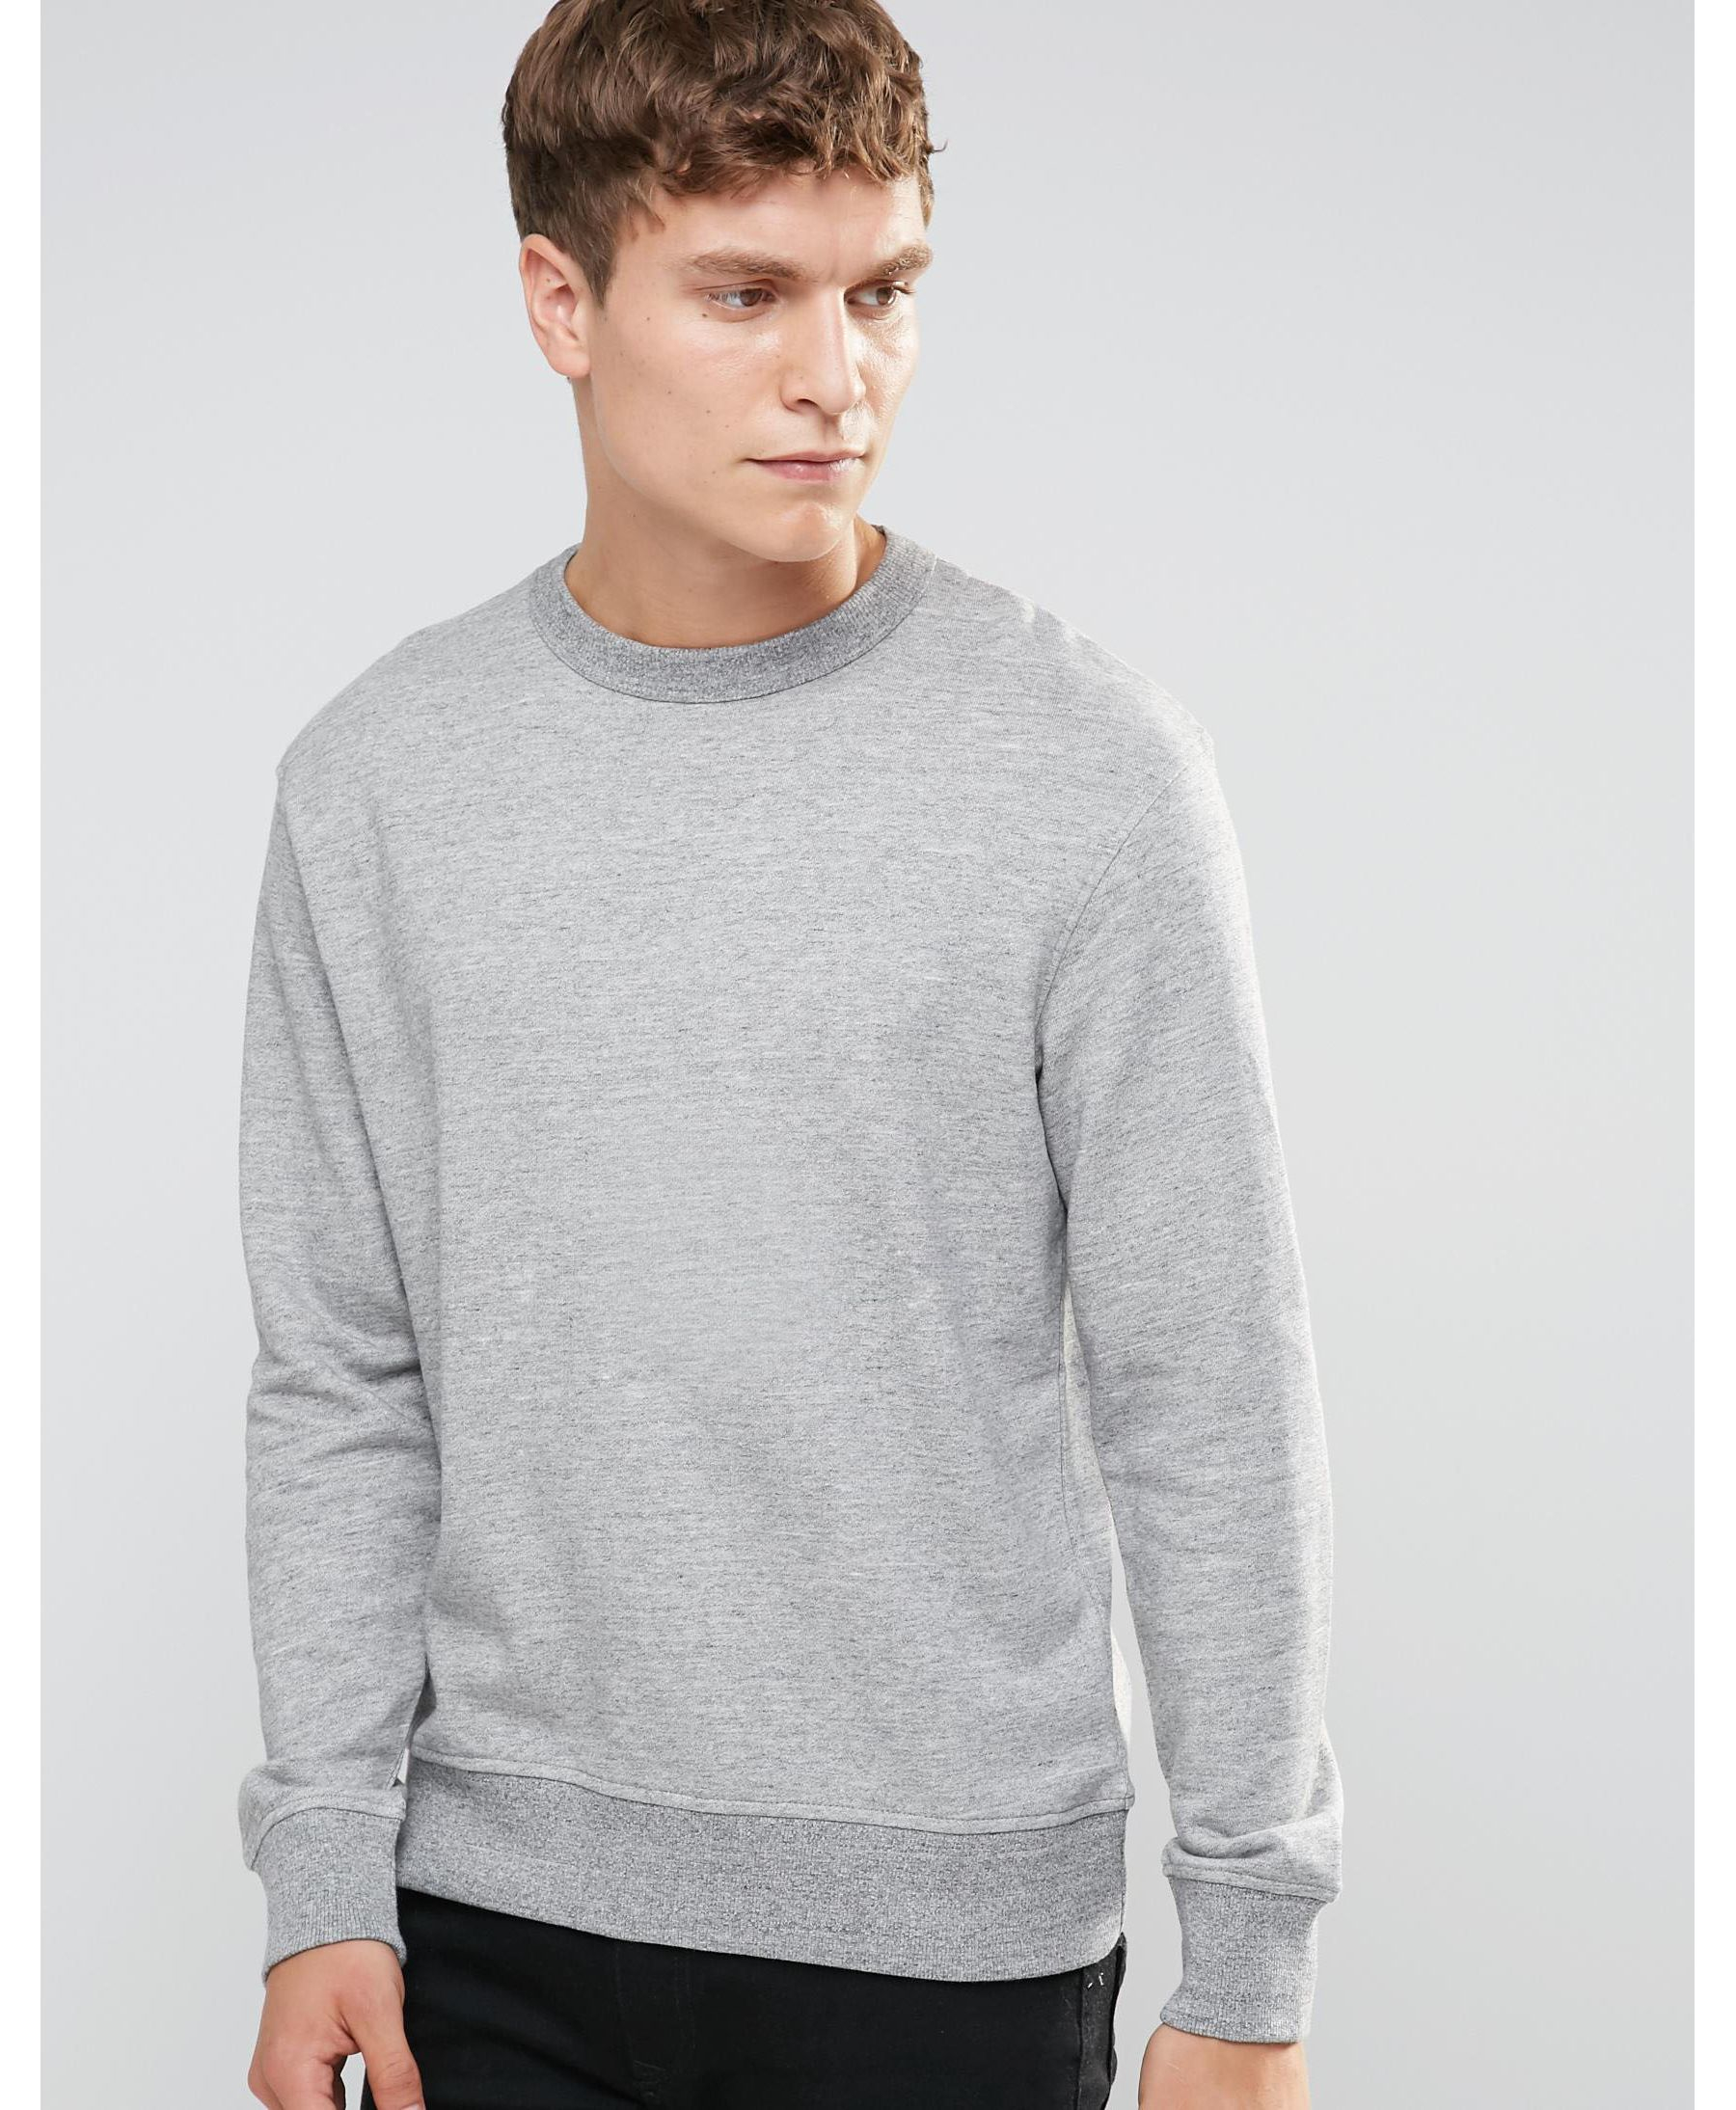 lyst jack jones originals sweatshirt in gray for men. Black Bedroom Furniture Sets. Home Design Ideas